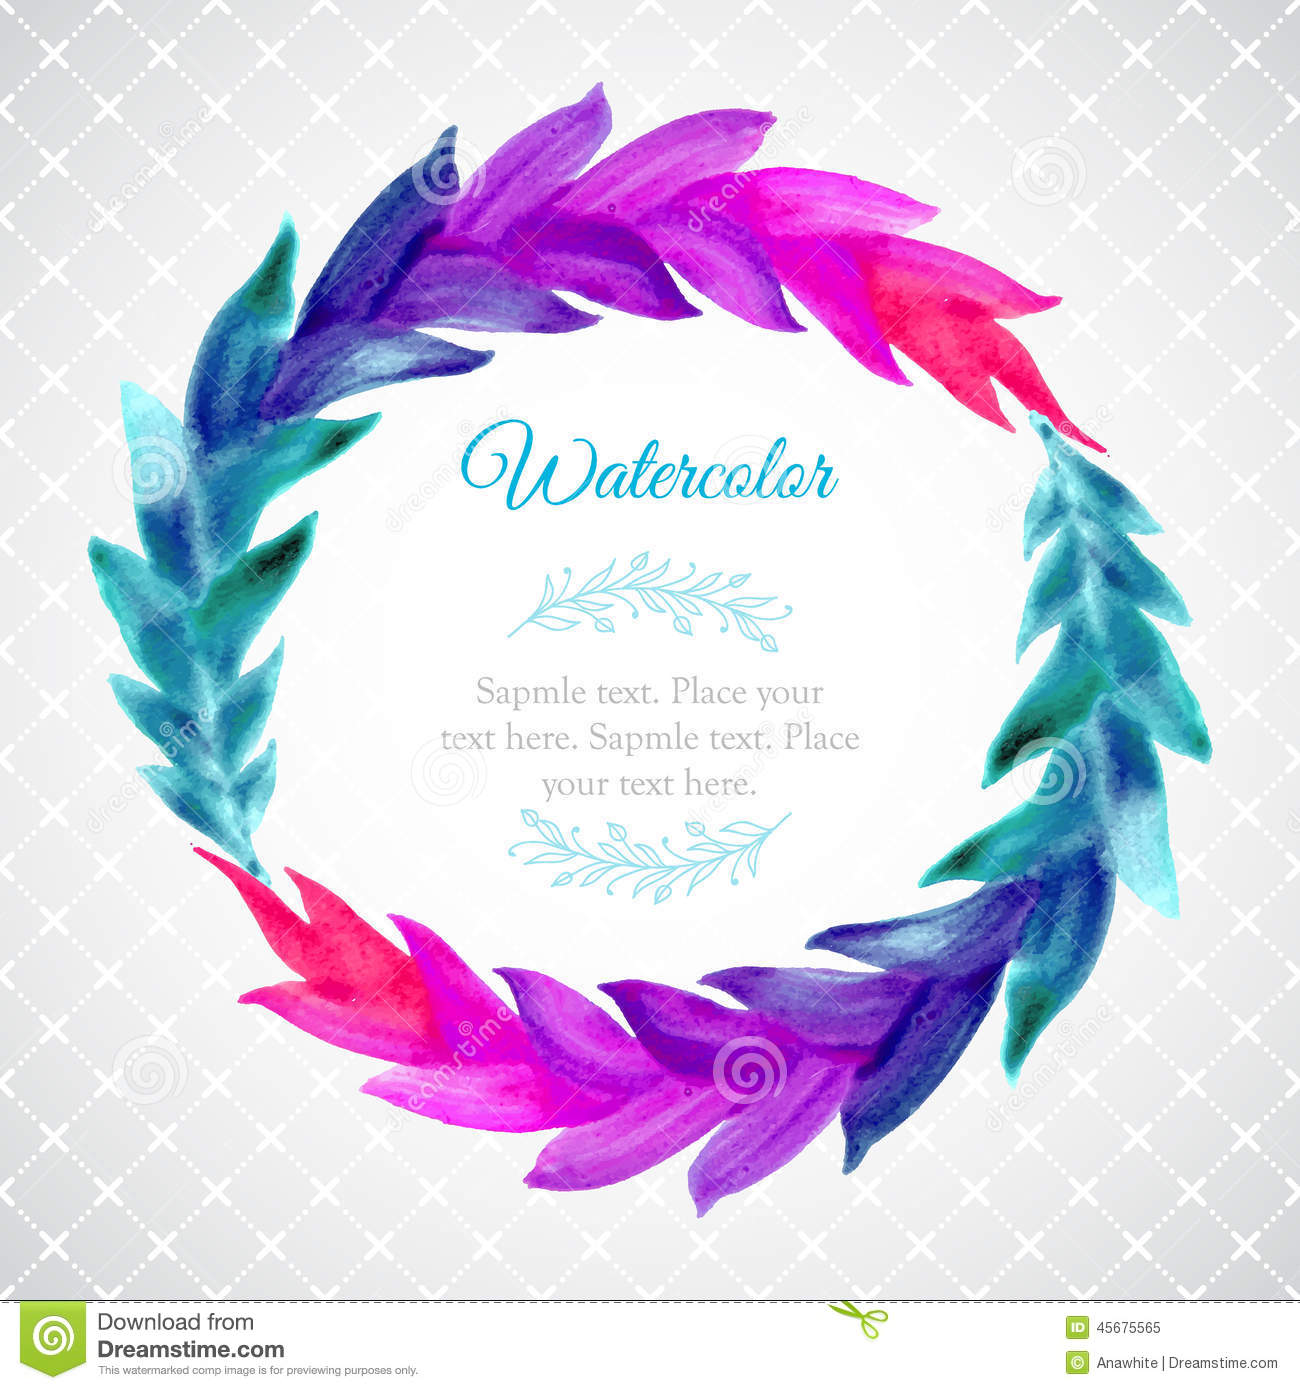 Watercolor Template With Wreath Of Colorful Leaves Stock Vector ...